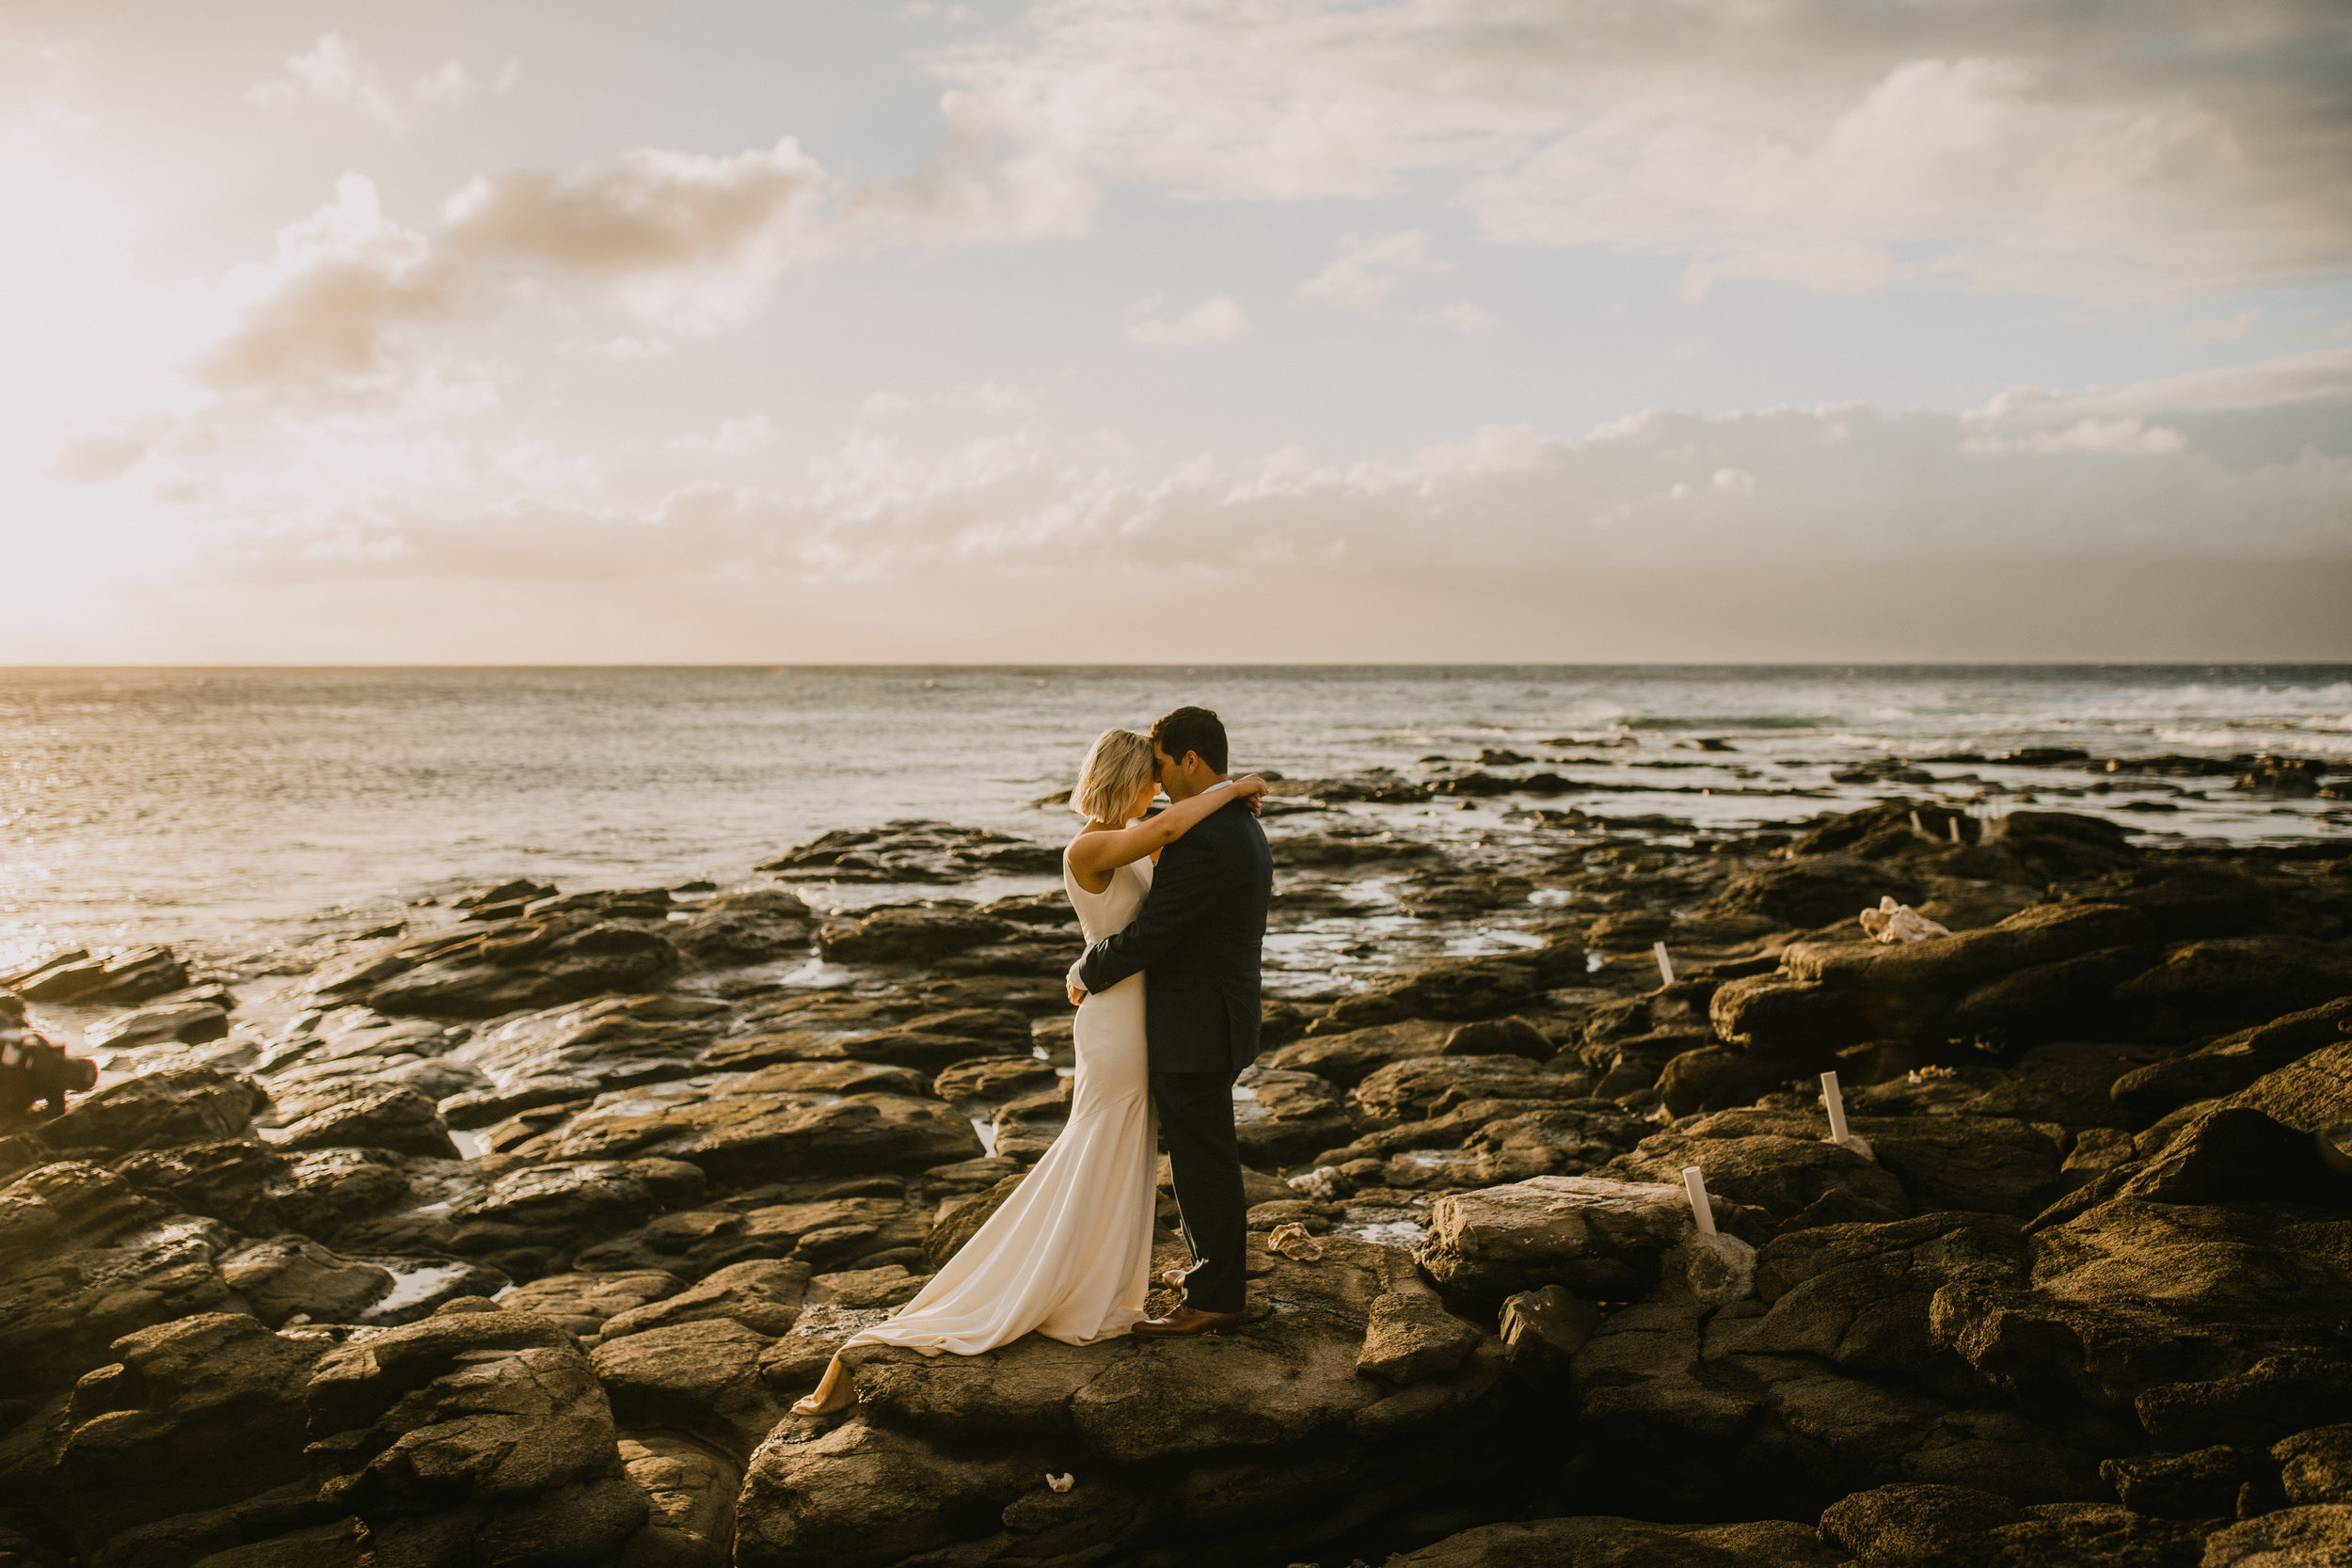 A&J-Maui Hawaii Wedding Photographer Videographer-573.jpg